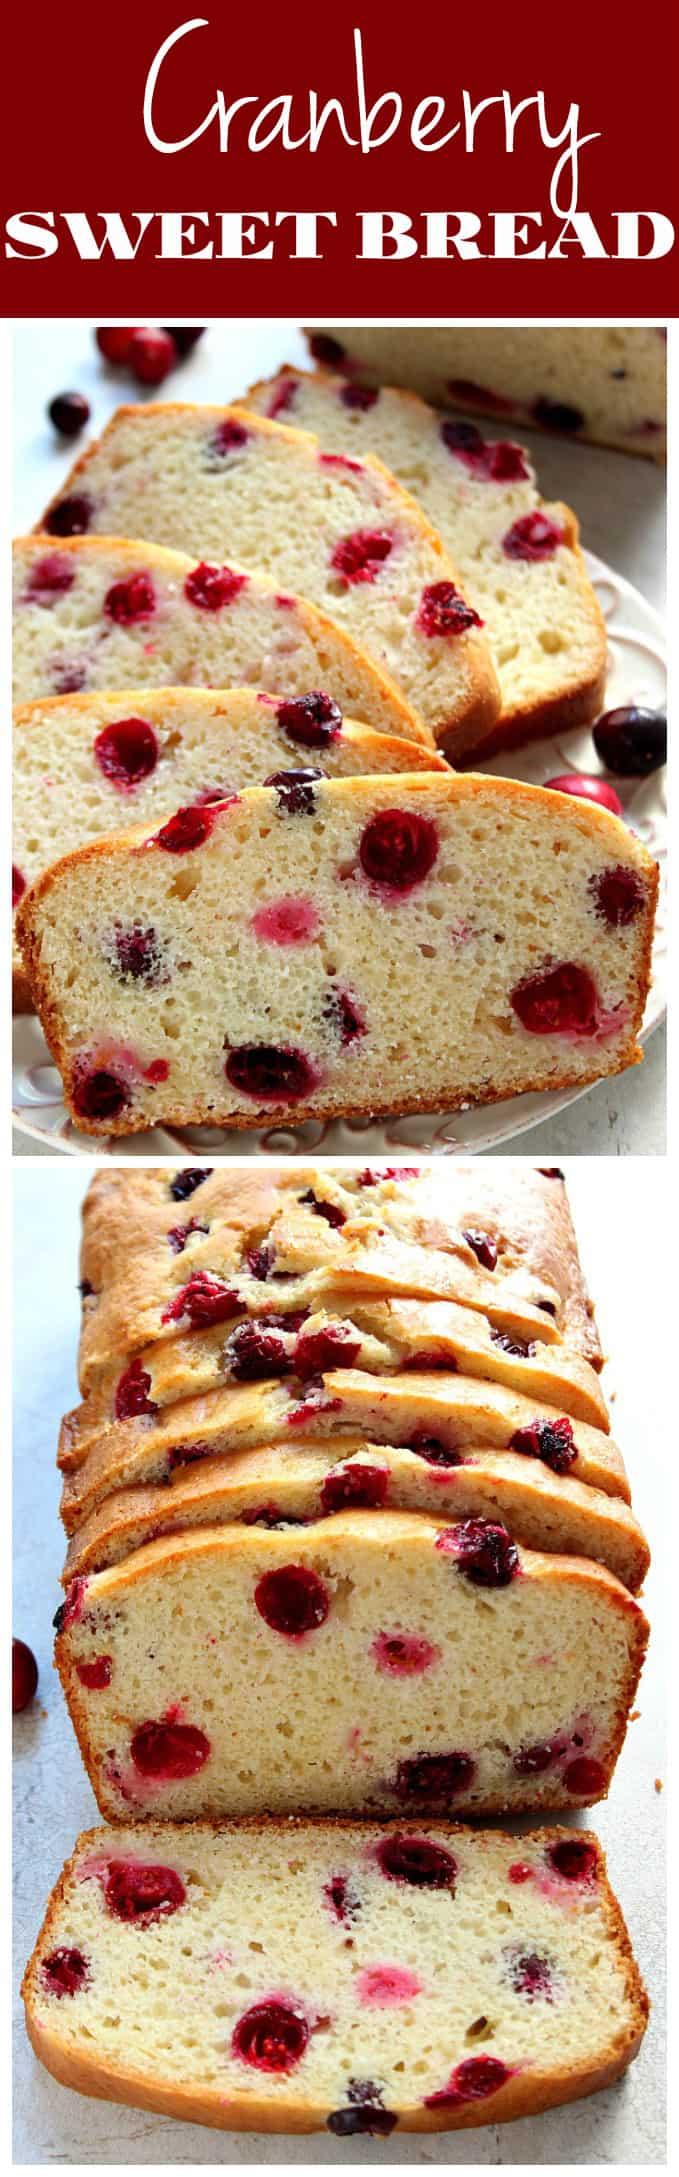 cranberry sweet bread recipe long1 Cranberry Bread Recipe